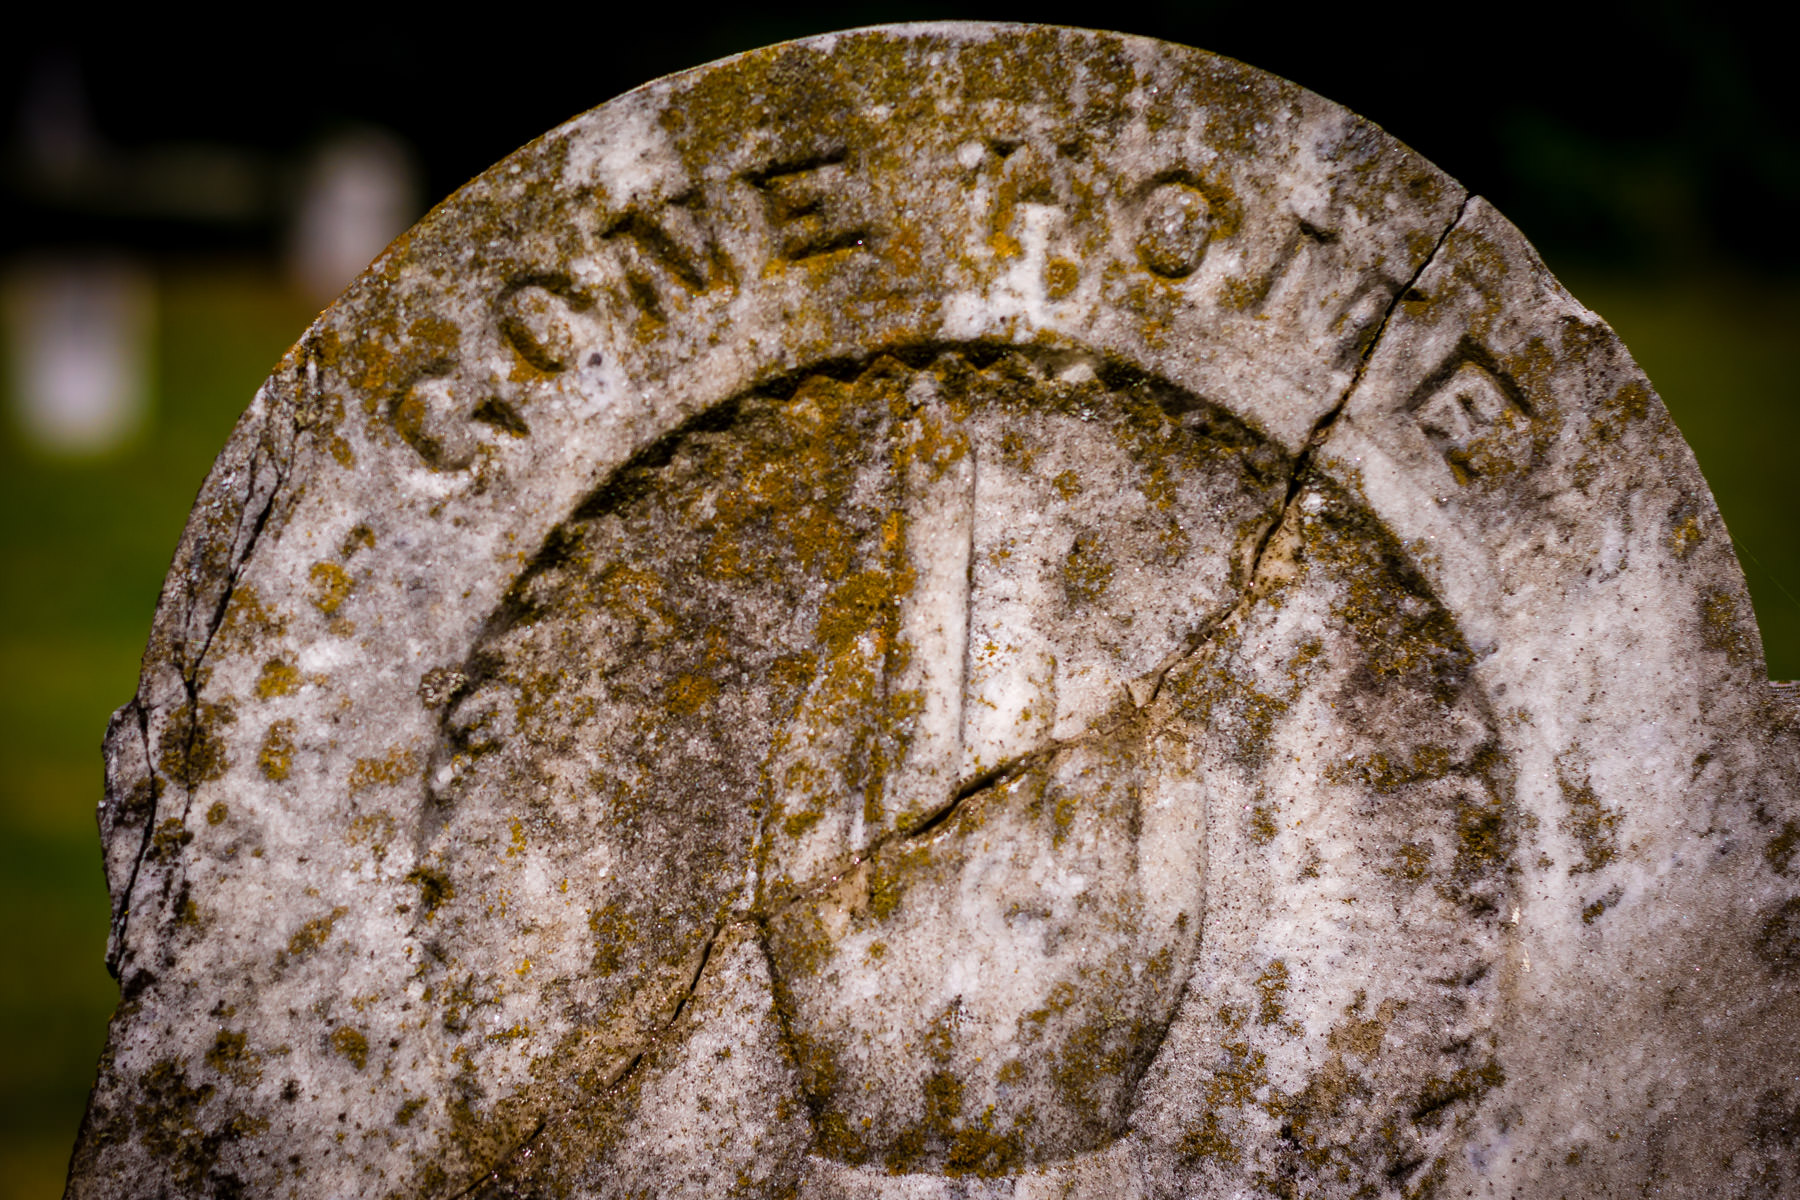 Detail of a crumbling, moss-covered grave stone at Minter's Chapel Cemetery on the grounds of DFW International Airport, Texas.